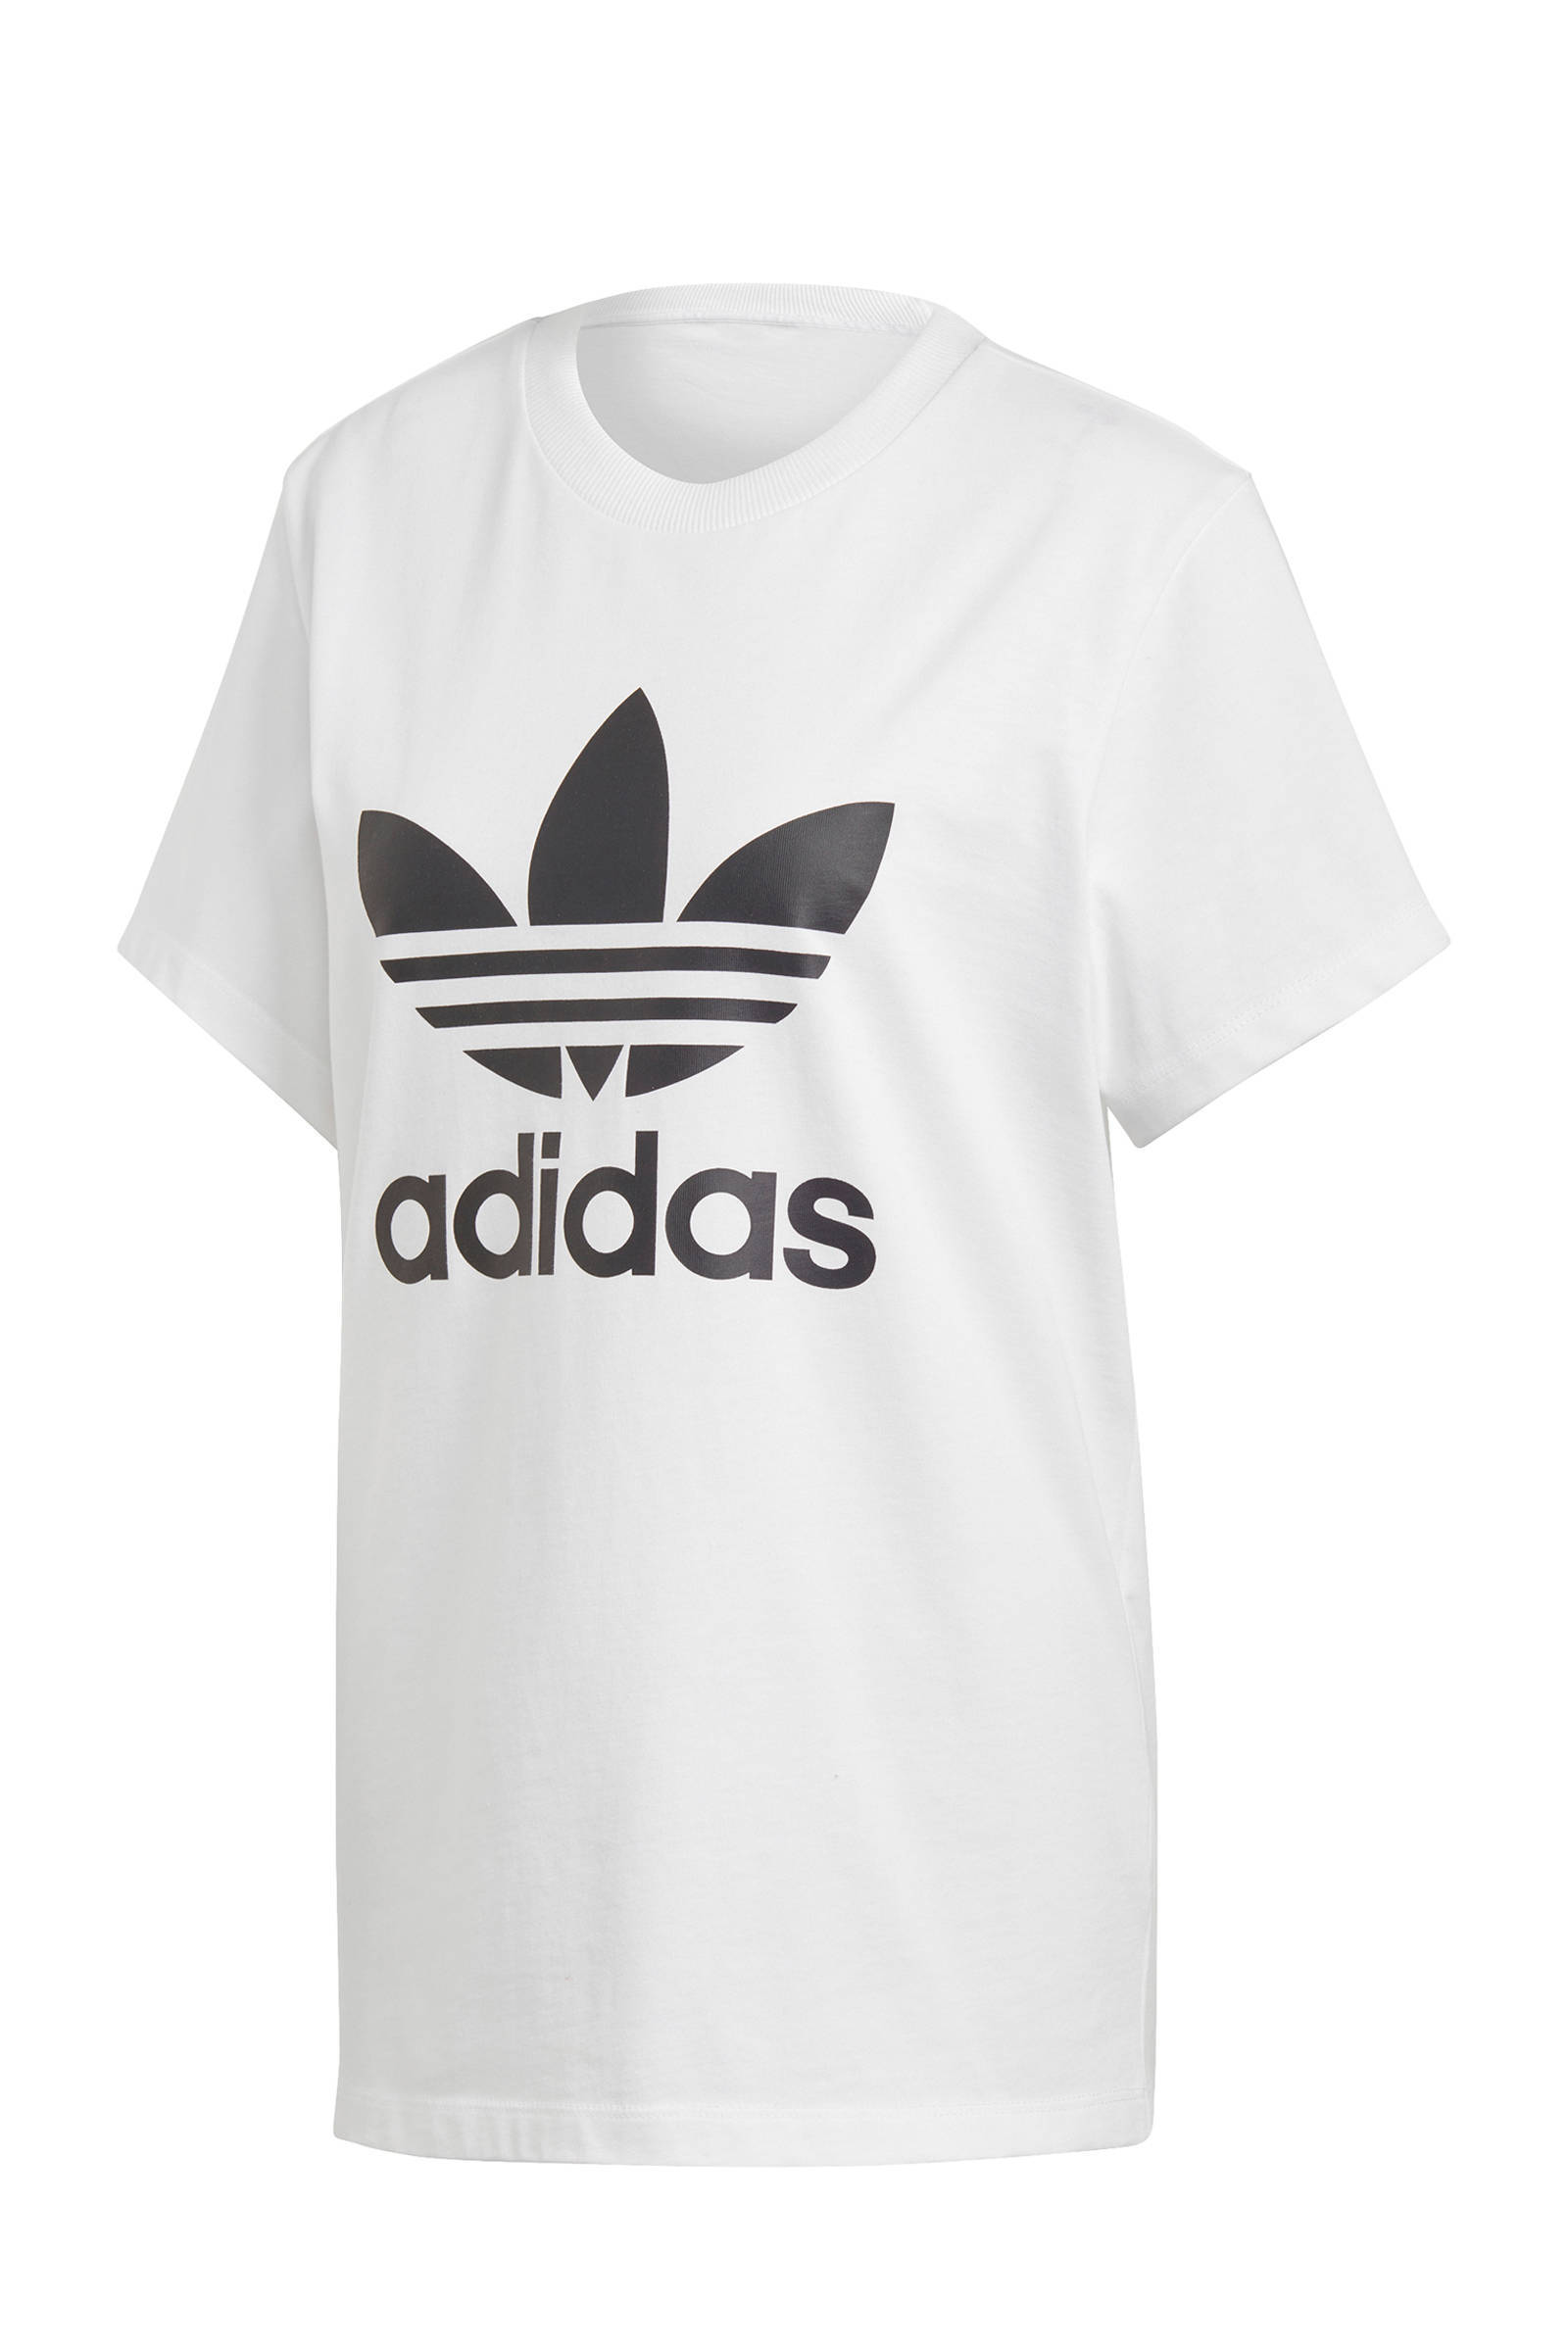 adidas Originals Adicolor oversized T-shirt wit | wehkamp